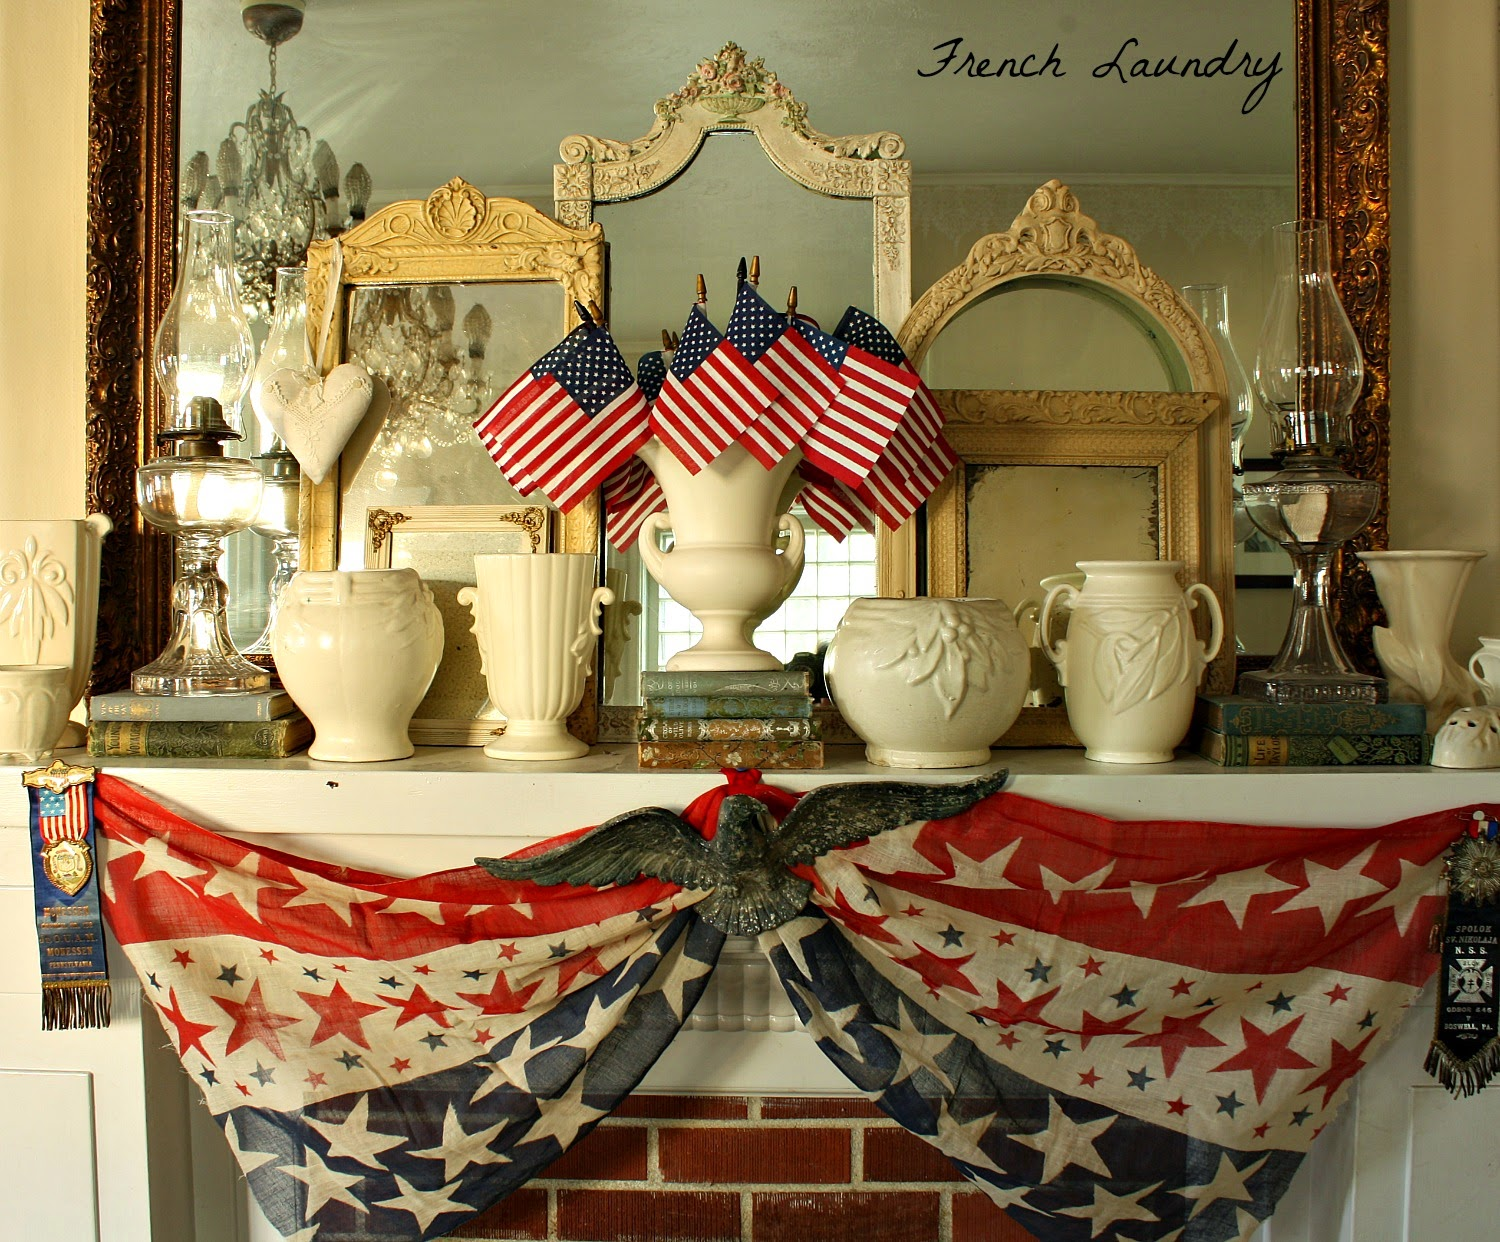 French Laundry July 4th Decor For The First Time In A Long Time